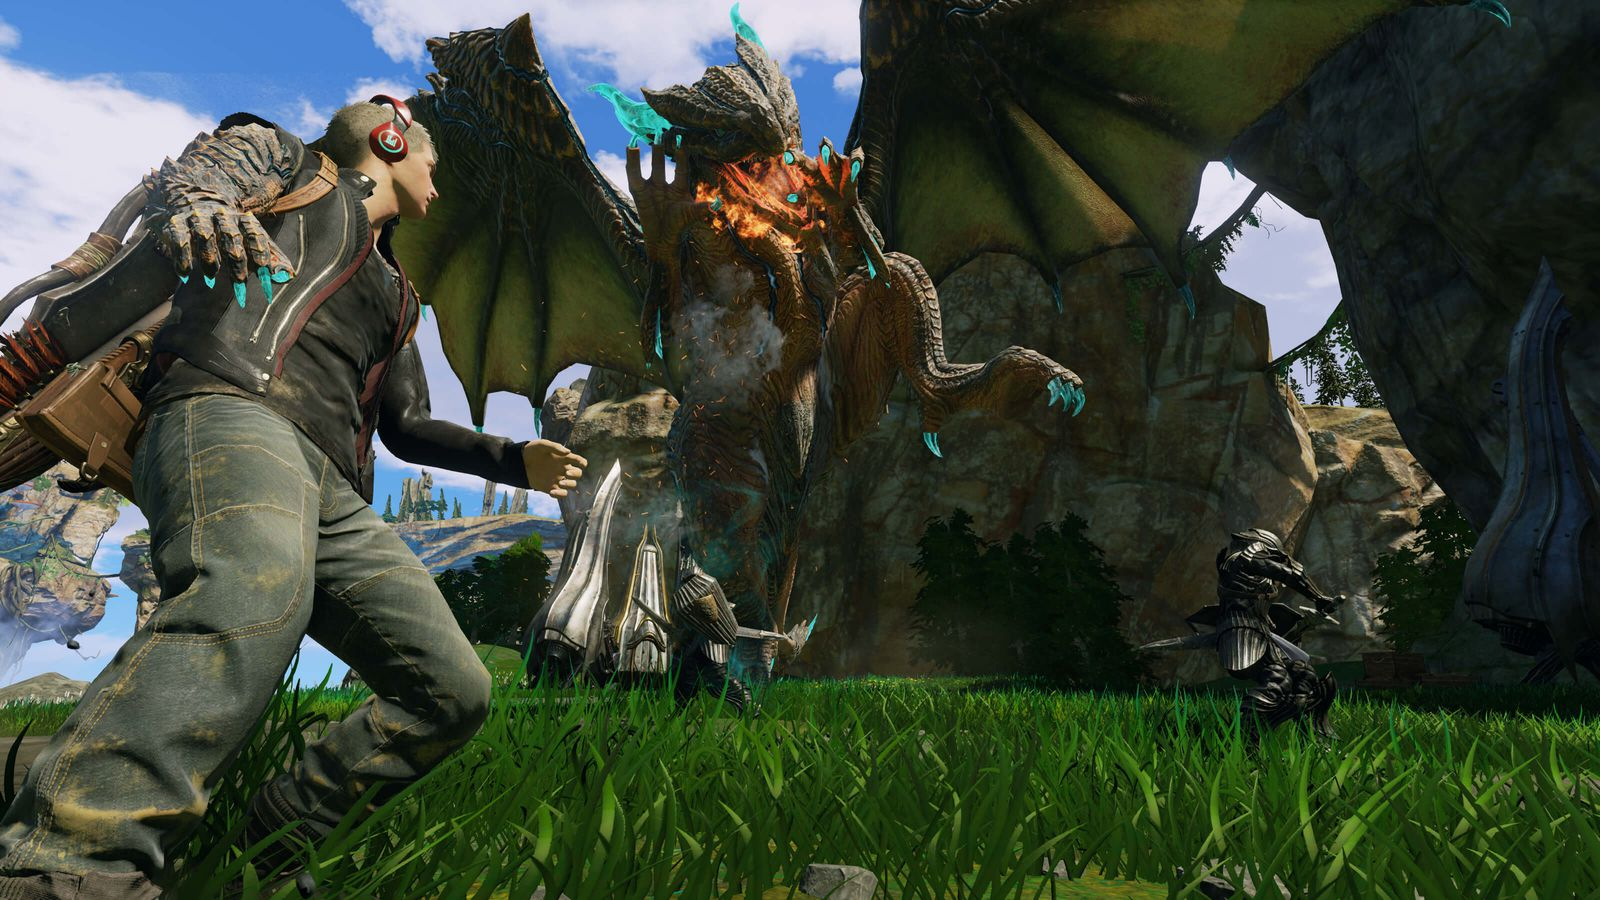 Xbox Exclusive Action Game Scalebound has been Canceled